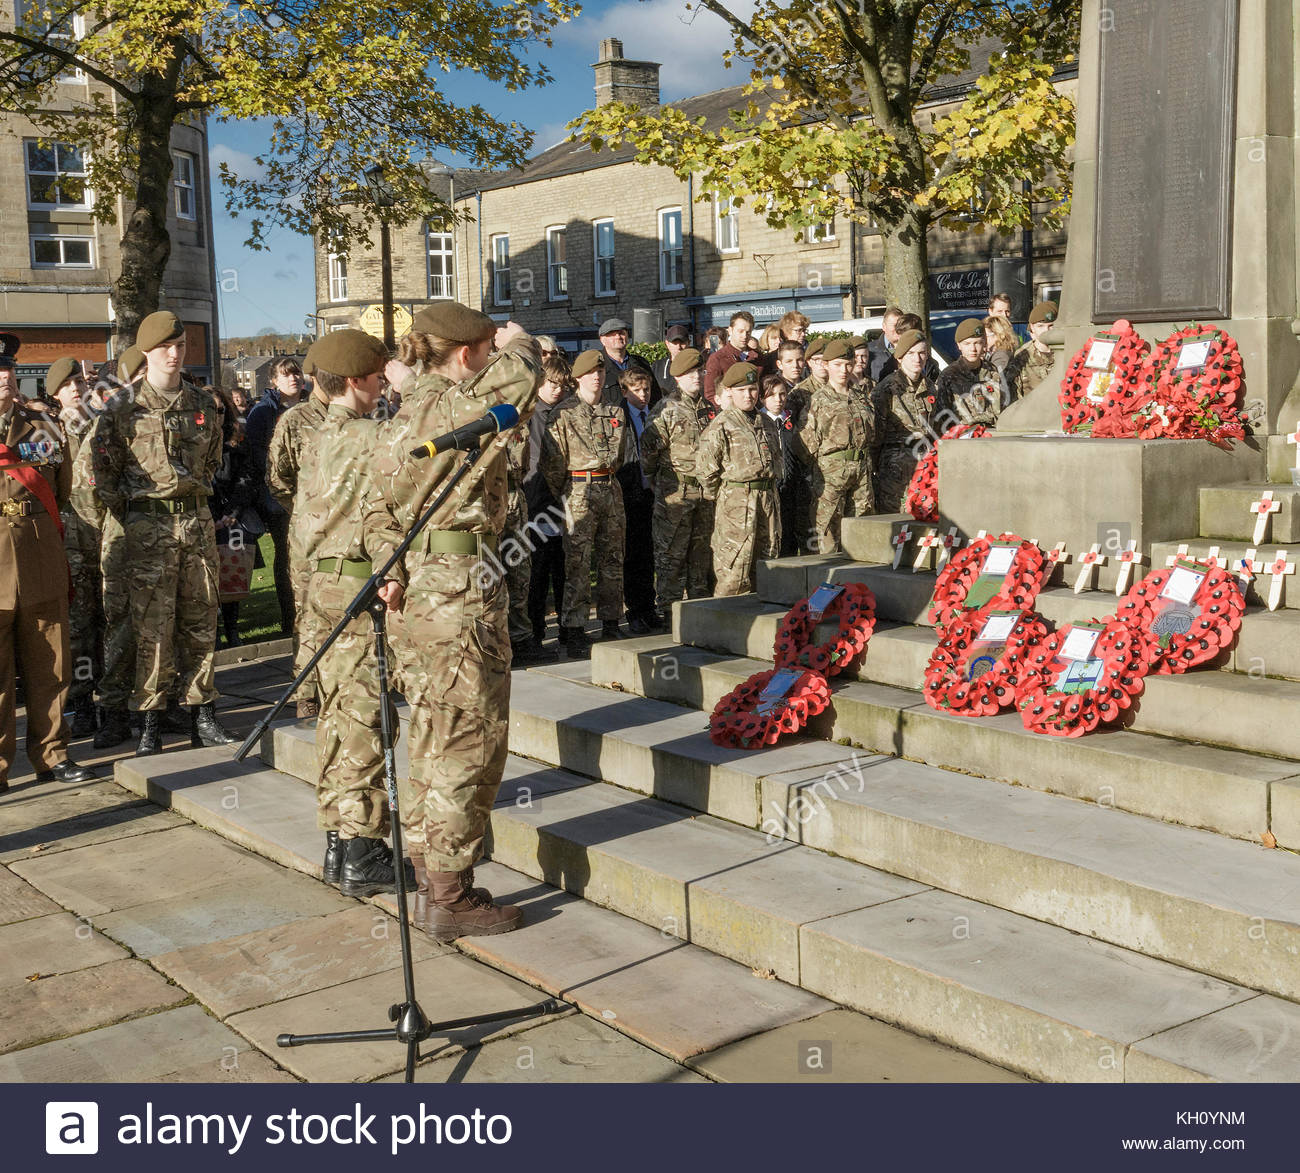 Reportage, archival,12 November 2017. Glossop Derbyshire England remembrance service, Members of Derbyshire Army - Stock Image